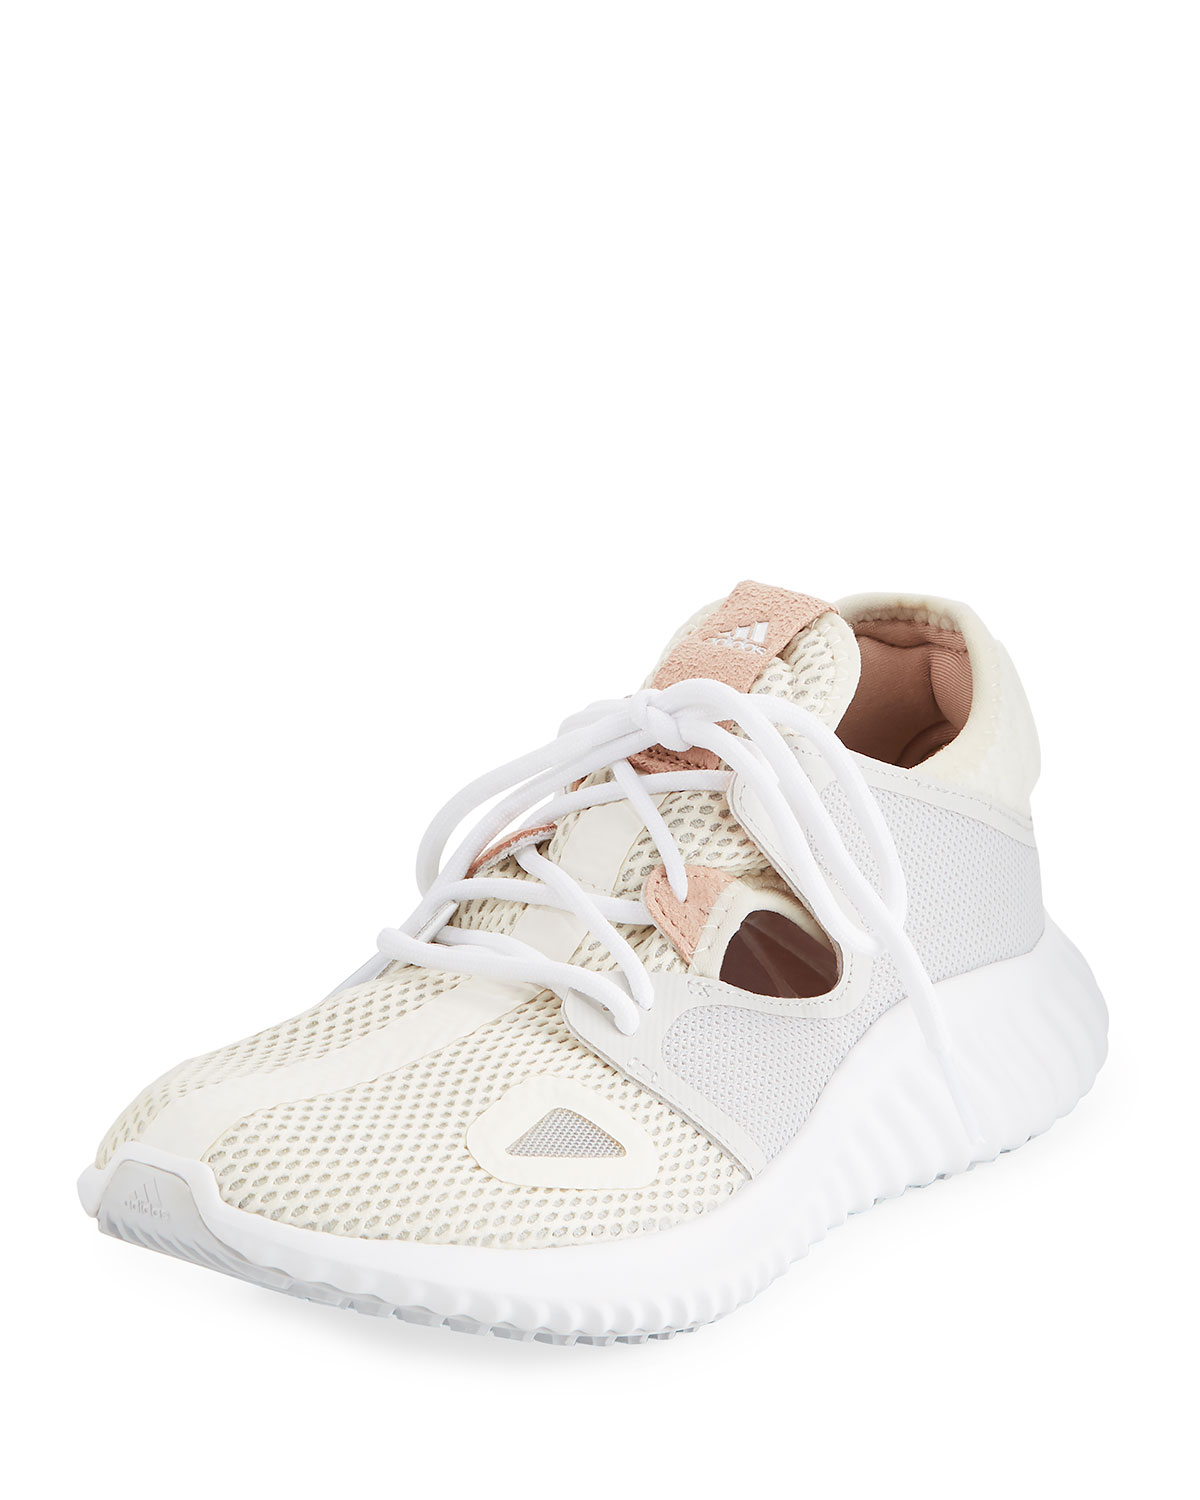 new style 0bc97 27485 AdidasRun Lux Clima Sneakers